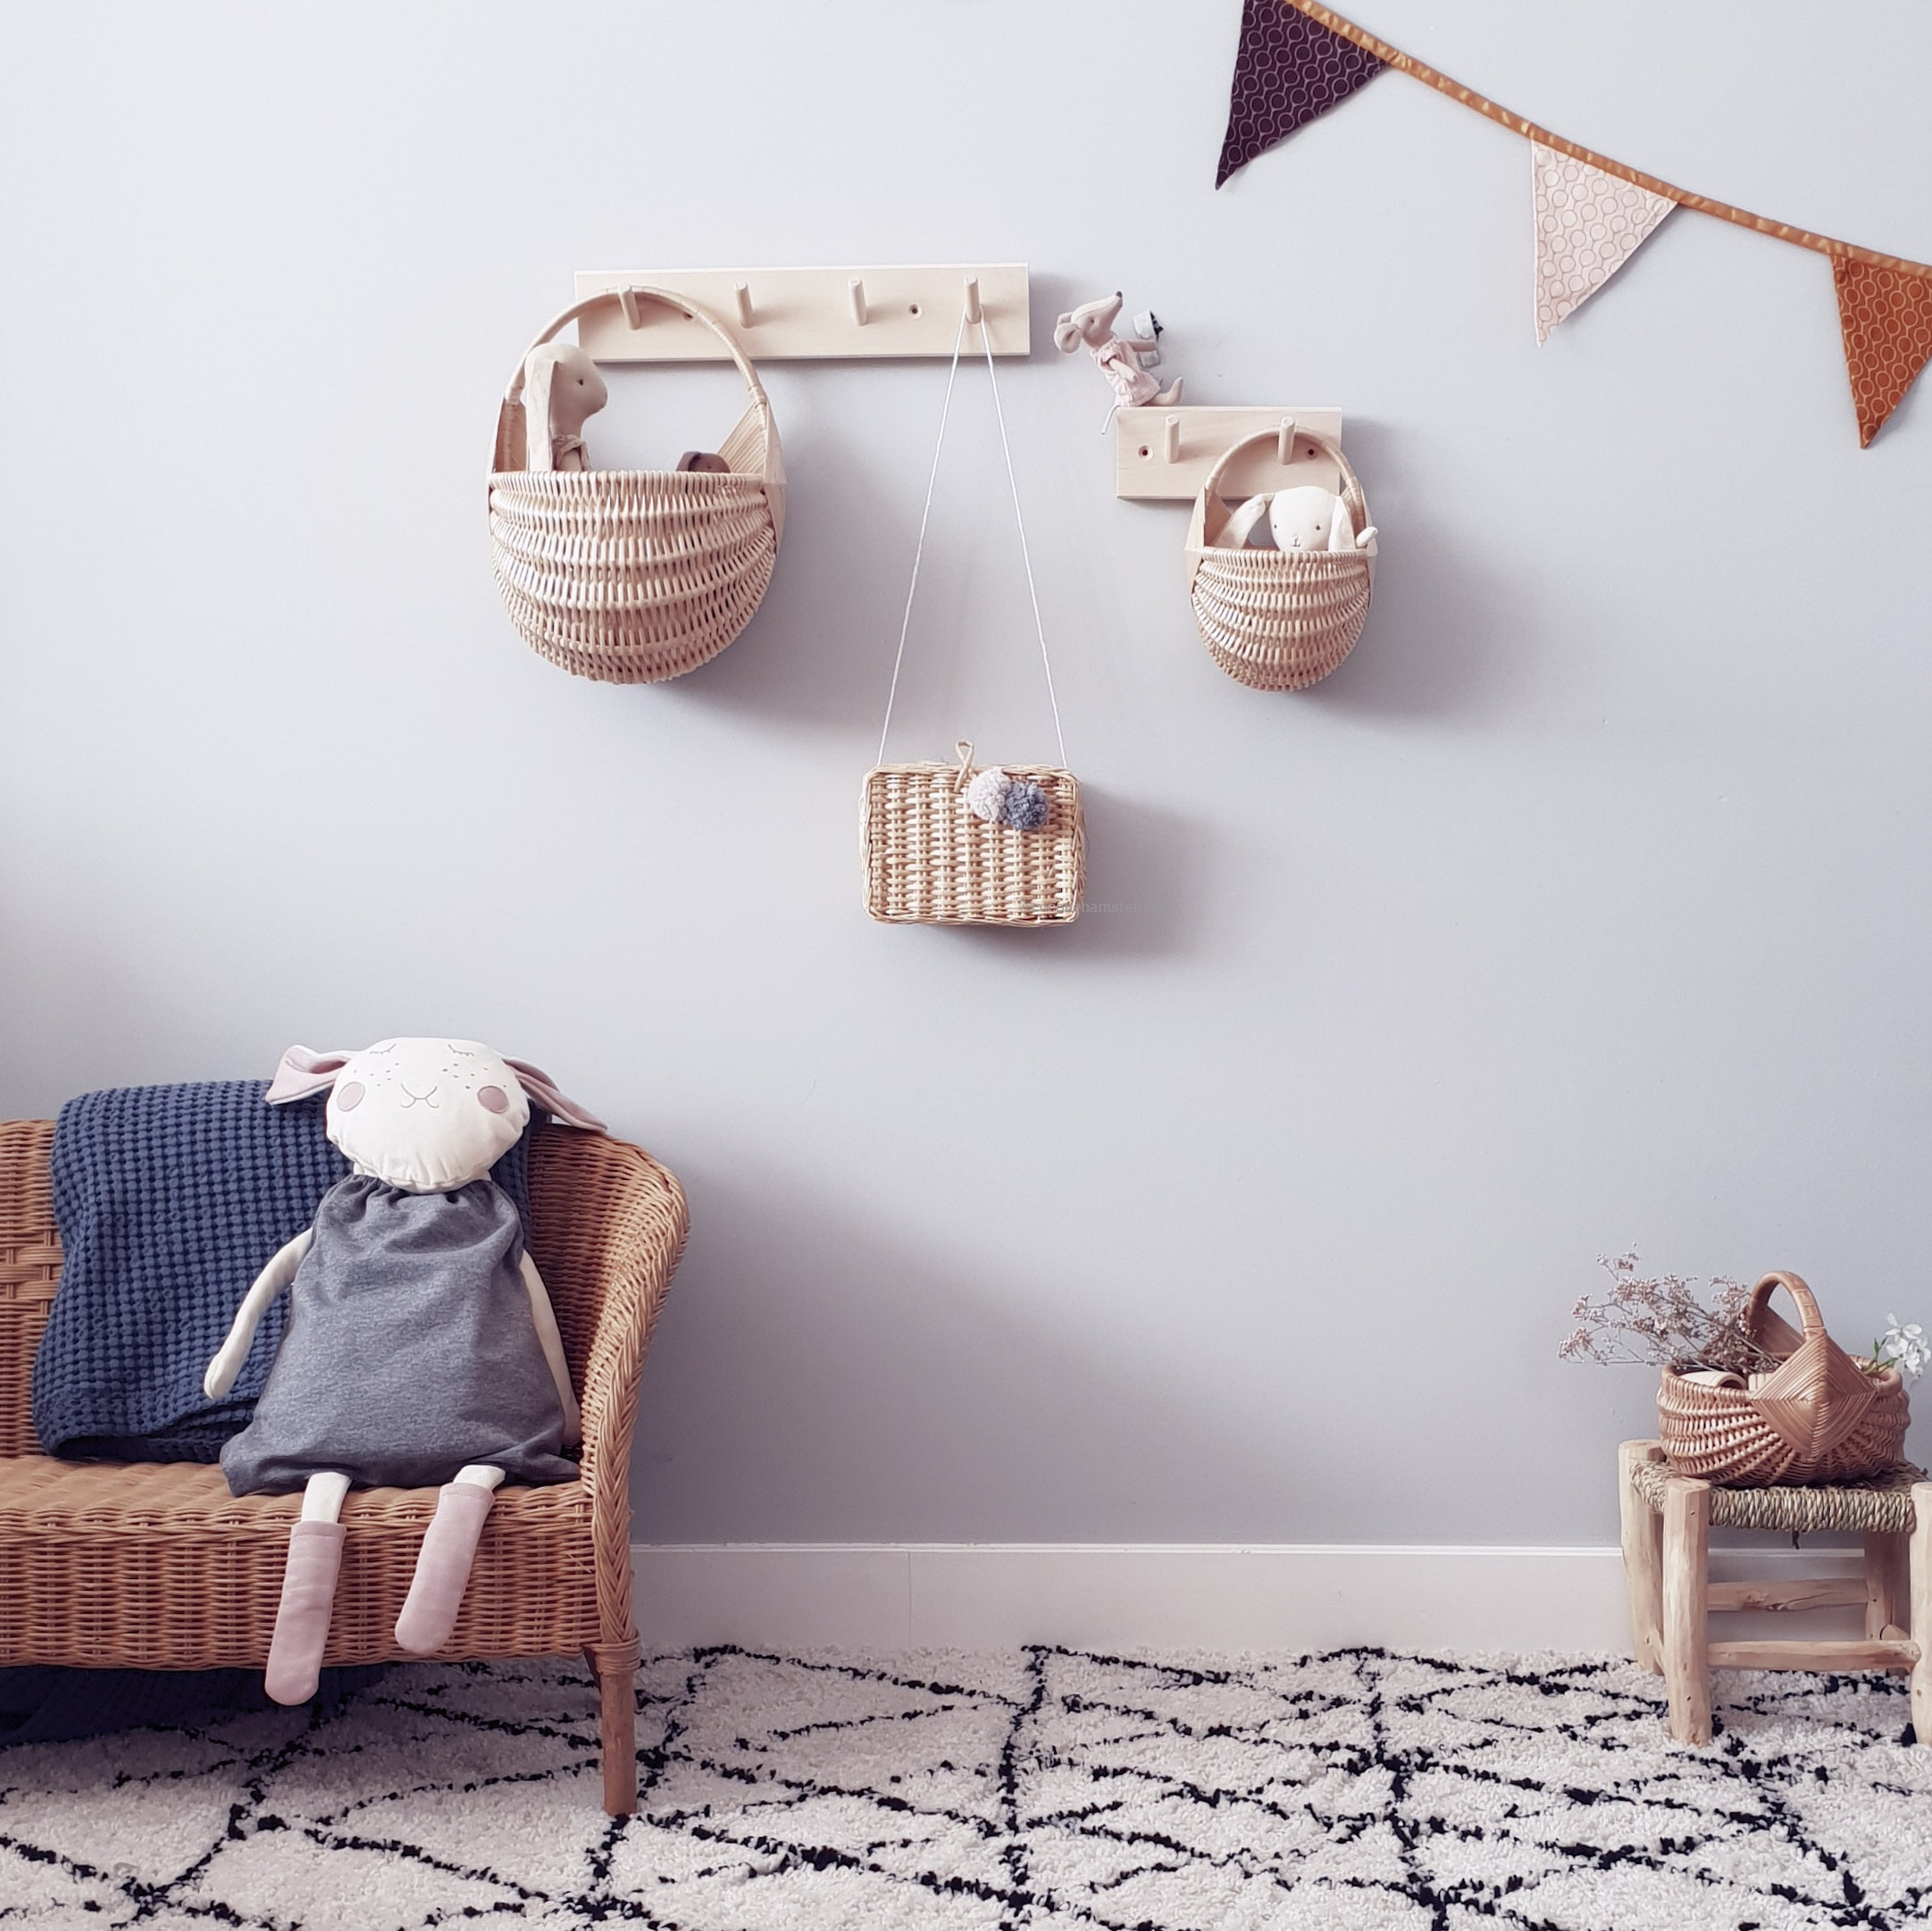 Wall Wicker Basket Medium